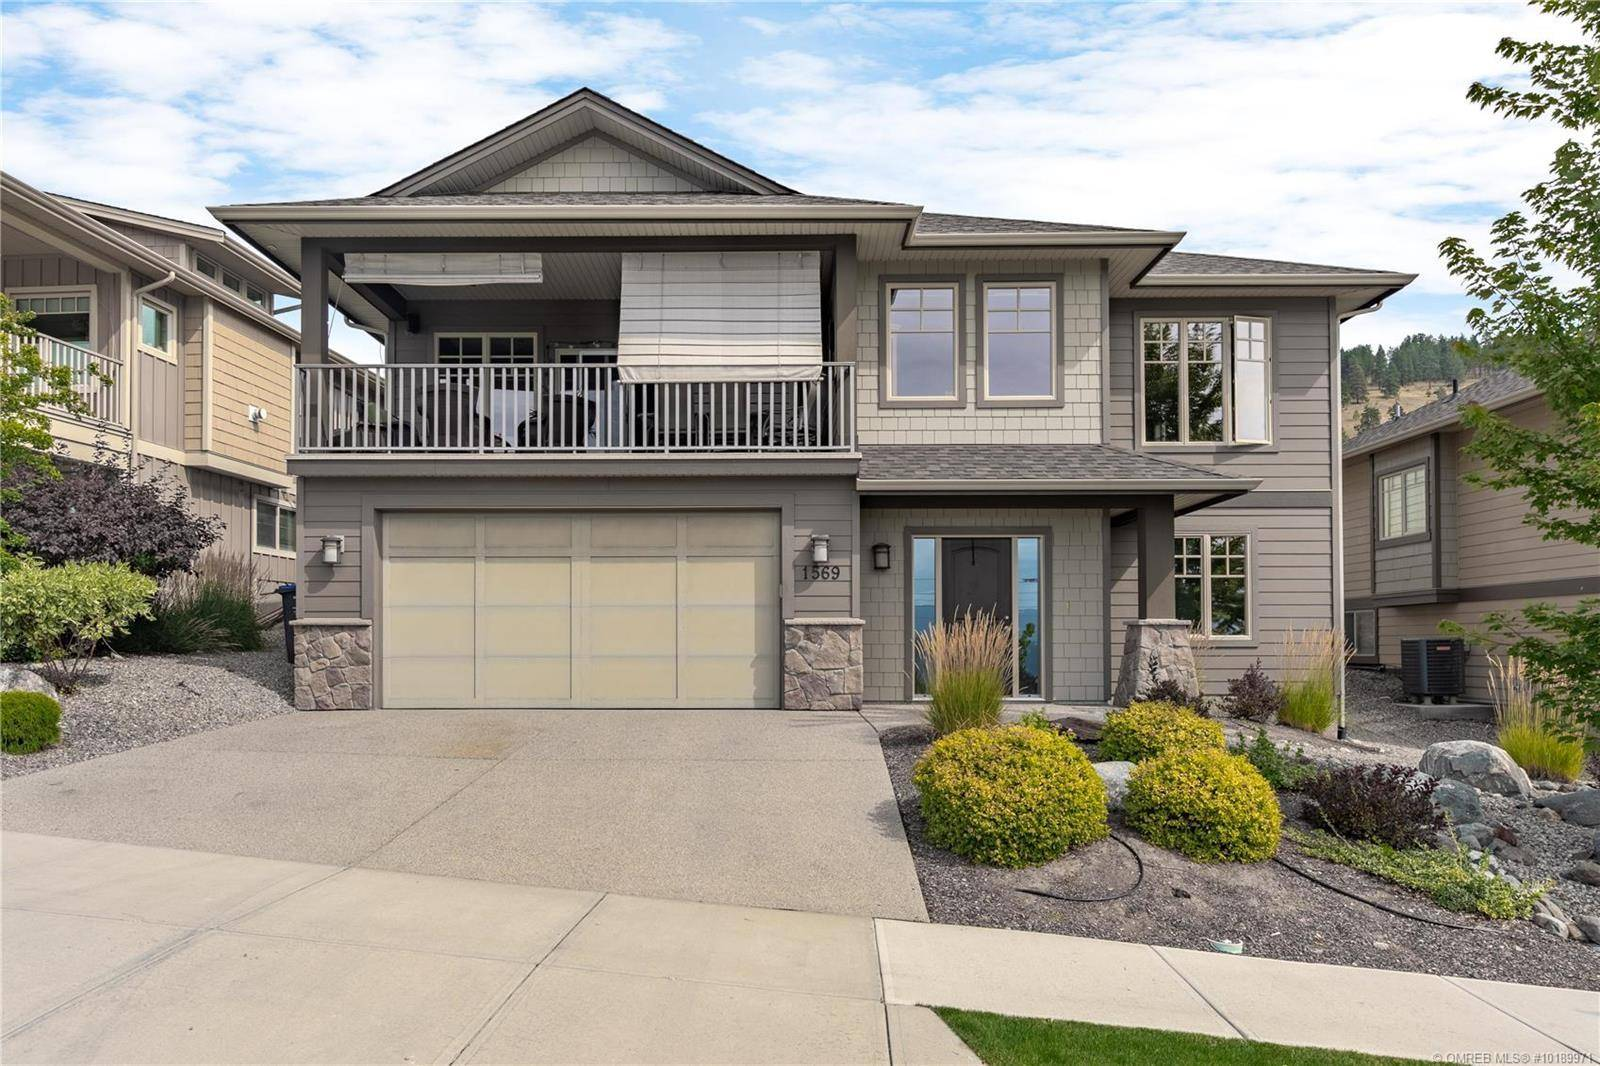 House for sale at 1569 Tower Ranch Blvd Kelowna British Columbia - MLS: 10189971